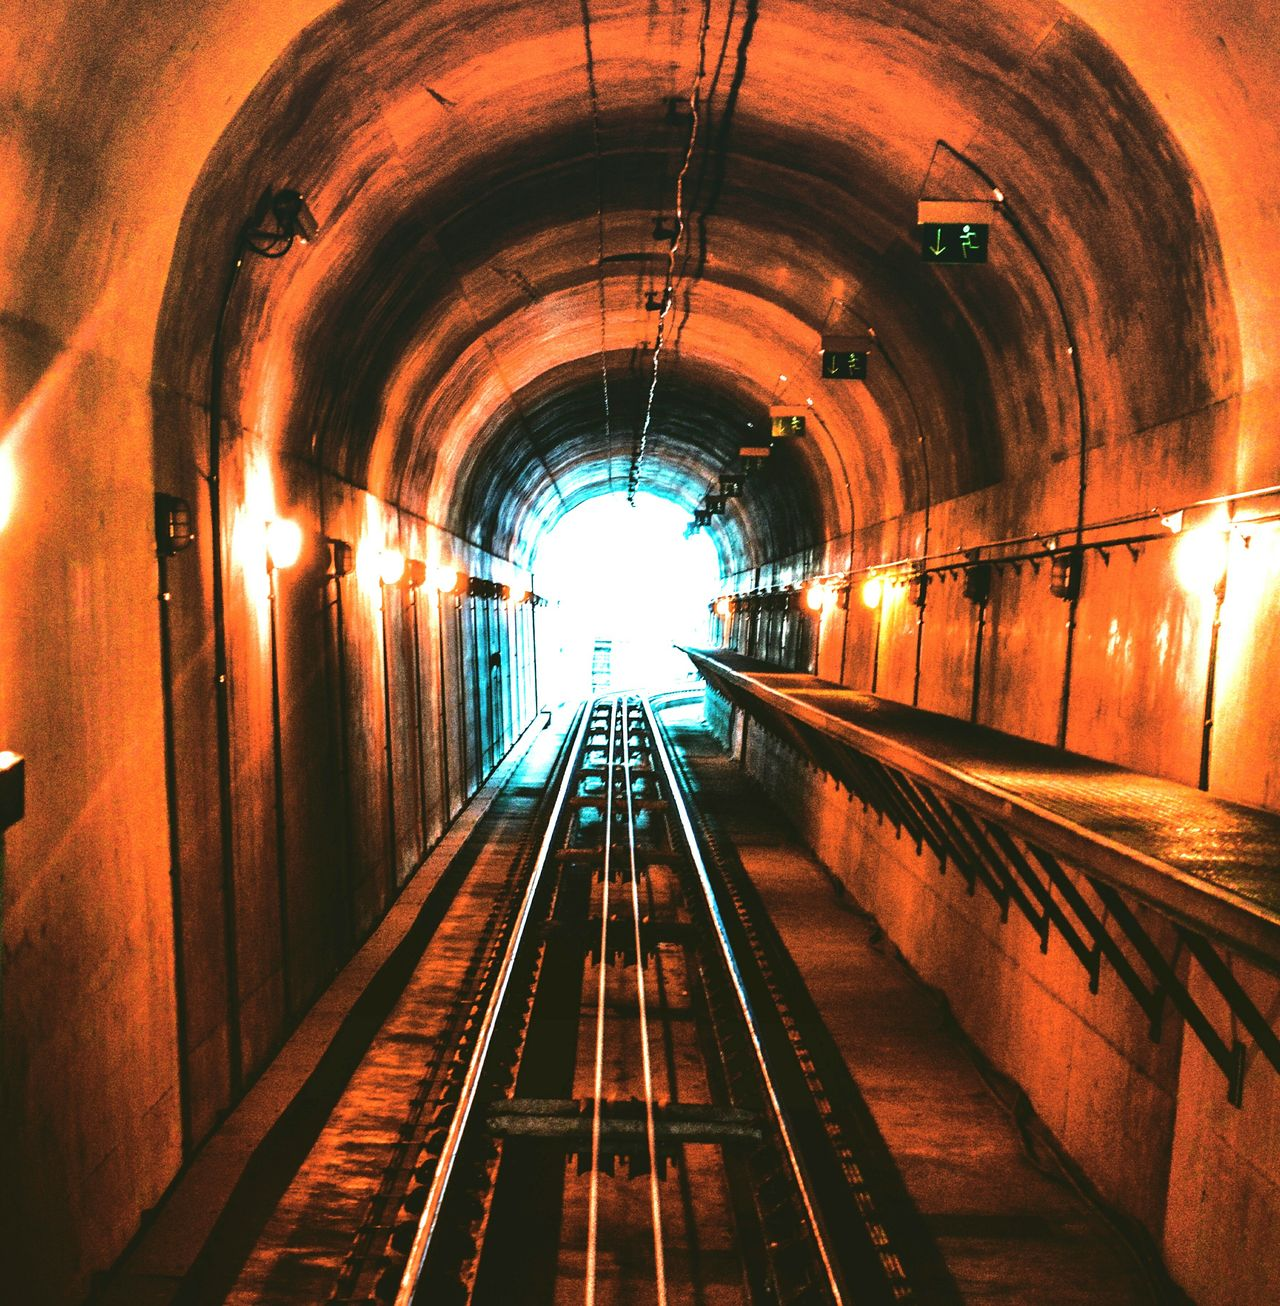 🌀 Transportation Tunnel Arch Rail Transportation Architecture The Way Forward Indoors  Built Structure Illuminated No People Subway Train Day Hanging Out Taking Photo Porto Streetphotografy